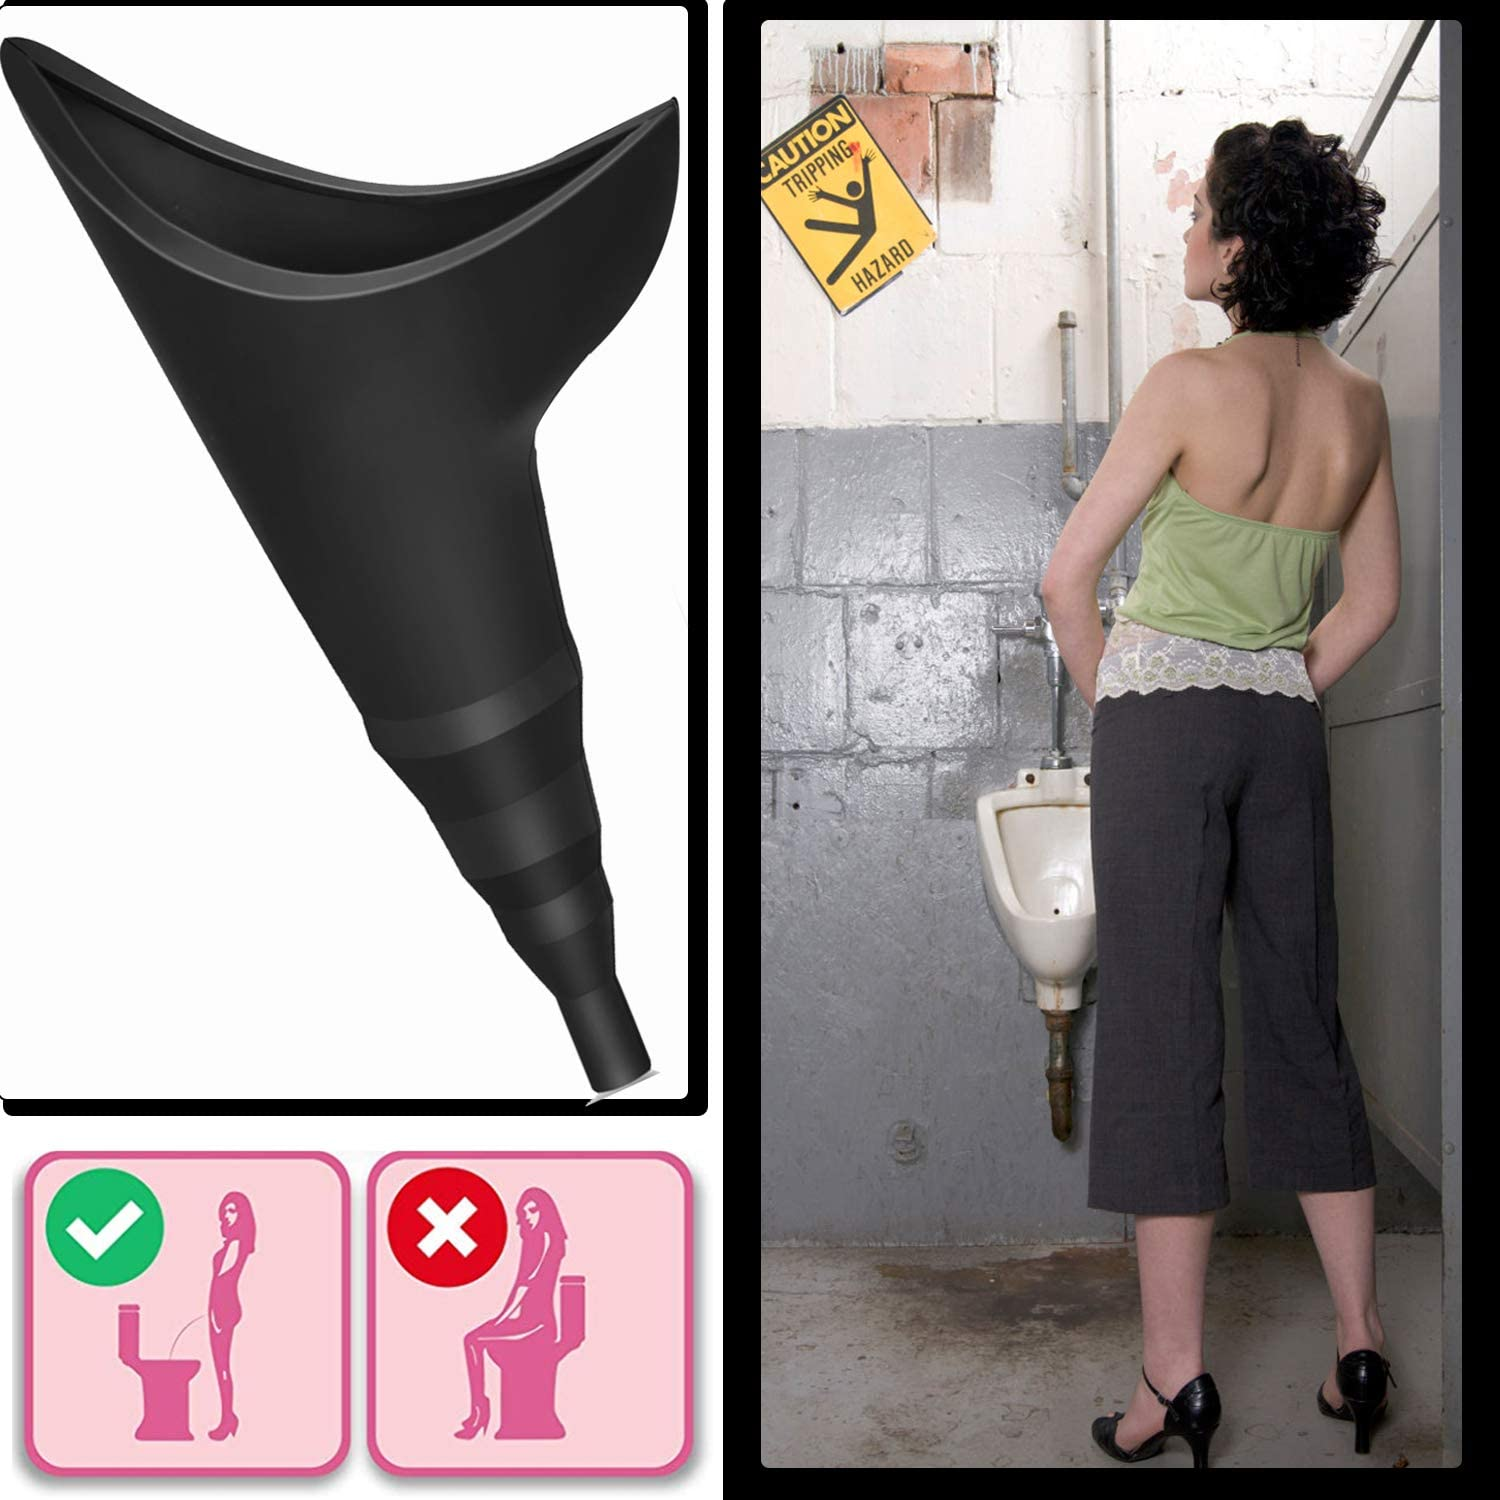 Lightweight Womens Pee Funnel for Outdoor Activities -with Drawstring Bag No Stress Reusable Compact No Mess Portable Foolproof Urinal Allows Women to Pee Standing Up Female Urination Device